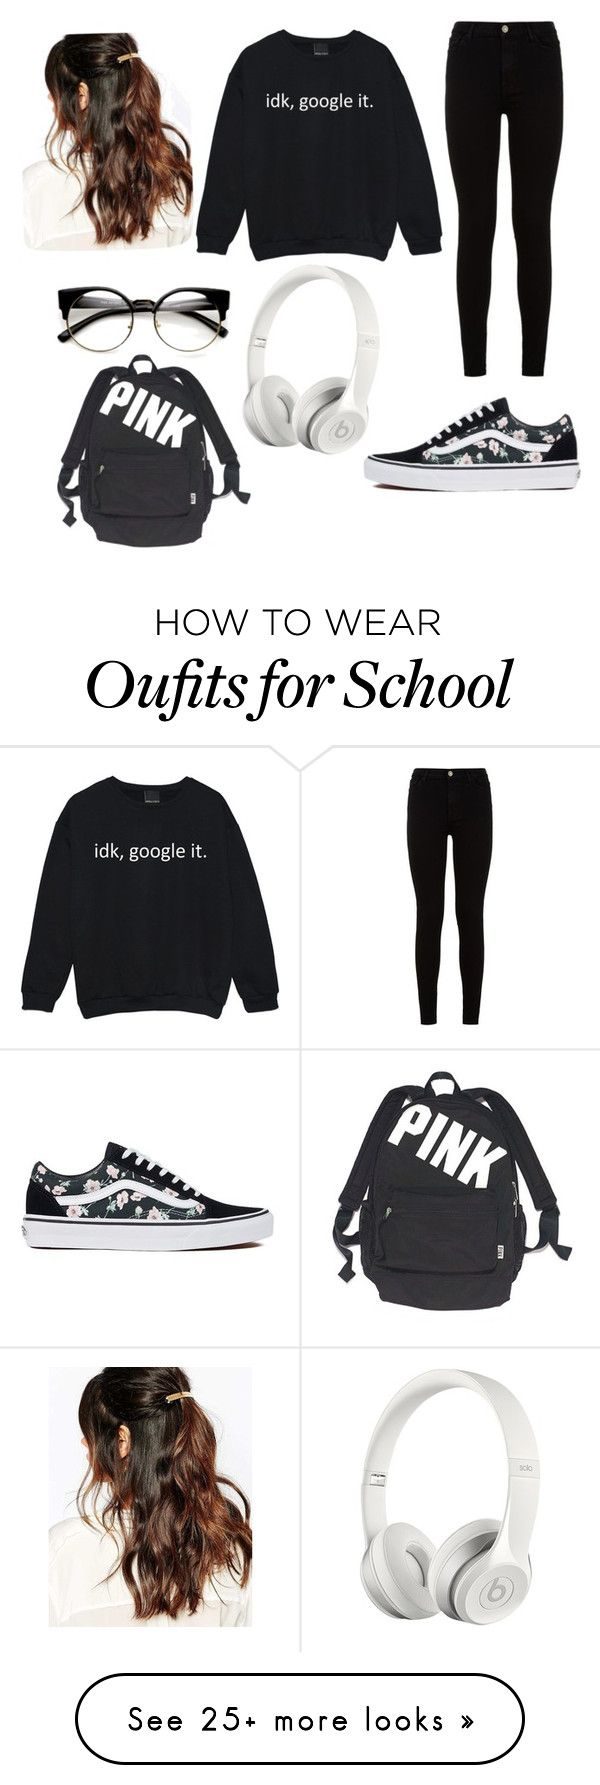 """""""School outfit"""" by cece-boutique on Polyvore featuring 7 For All Mankind, Vans, Suzywan DELUXE, Beats by Dr. Dre and Victoria's Secret"""